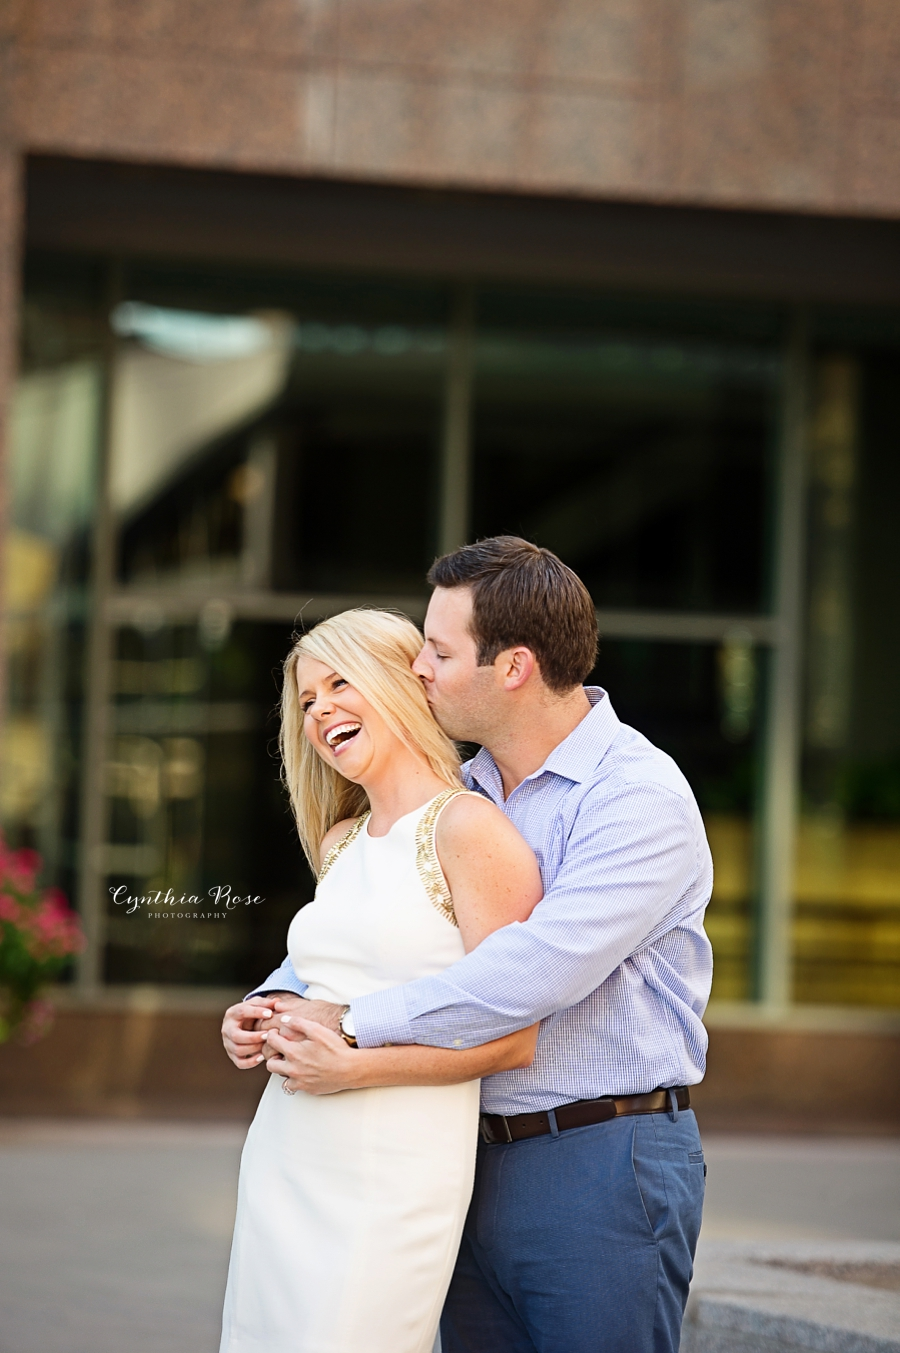 downtownraleighengagementsession_0066.jpg